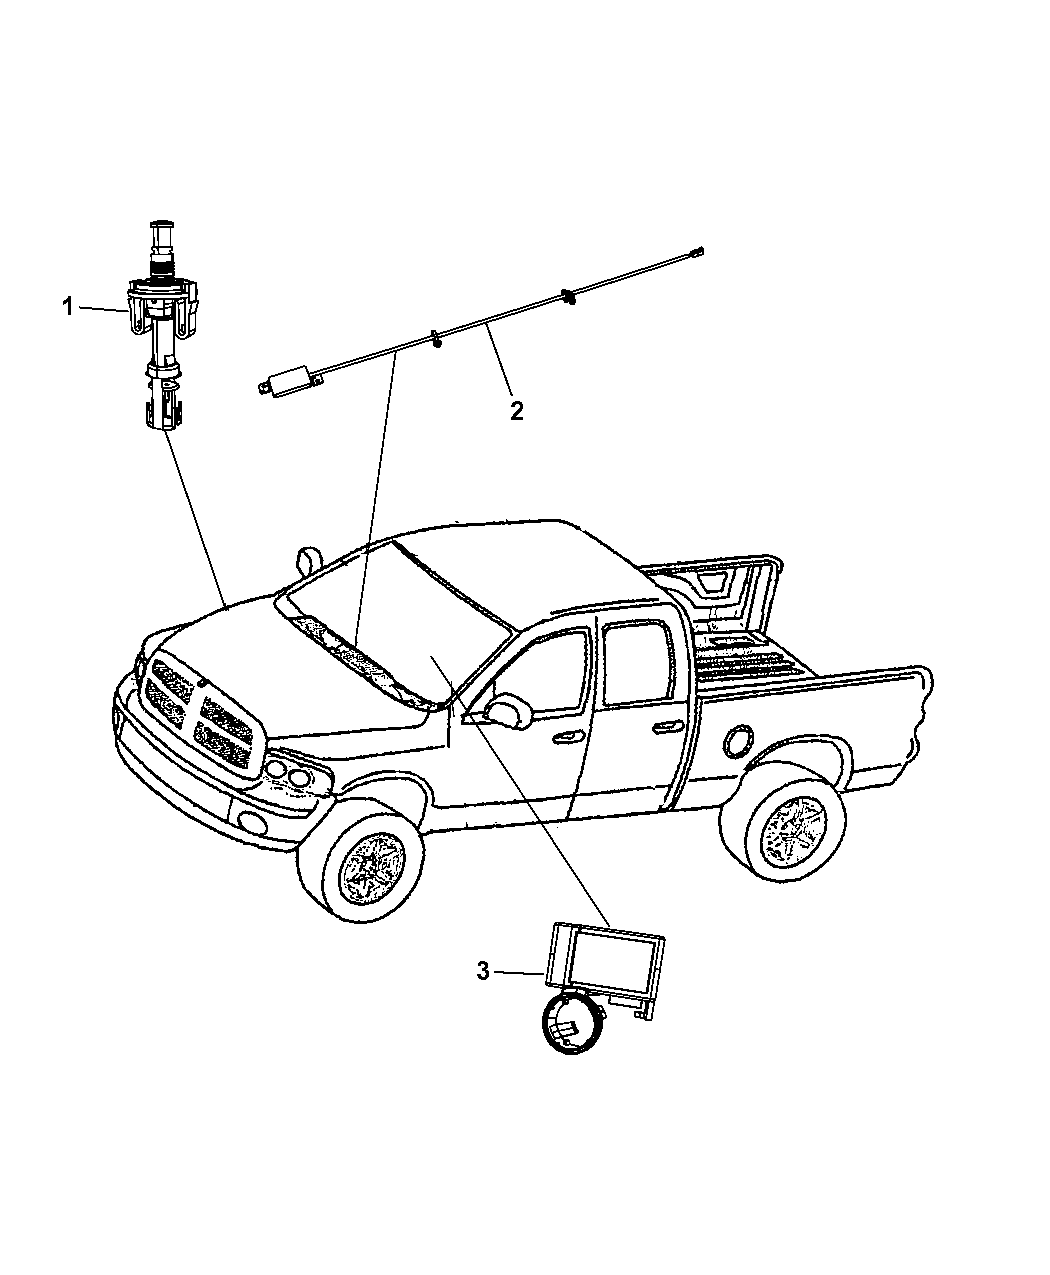 1492860 furthermore 50 Mercury Wiring Harness Diagram together with Mopar Antenna Keyless Entry 5026232ac furthermore Sokar Fpv Drone together with Tilton Super Starter Wiring Diagram. on remote start antenna